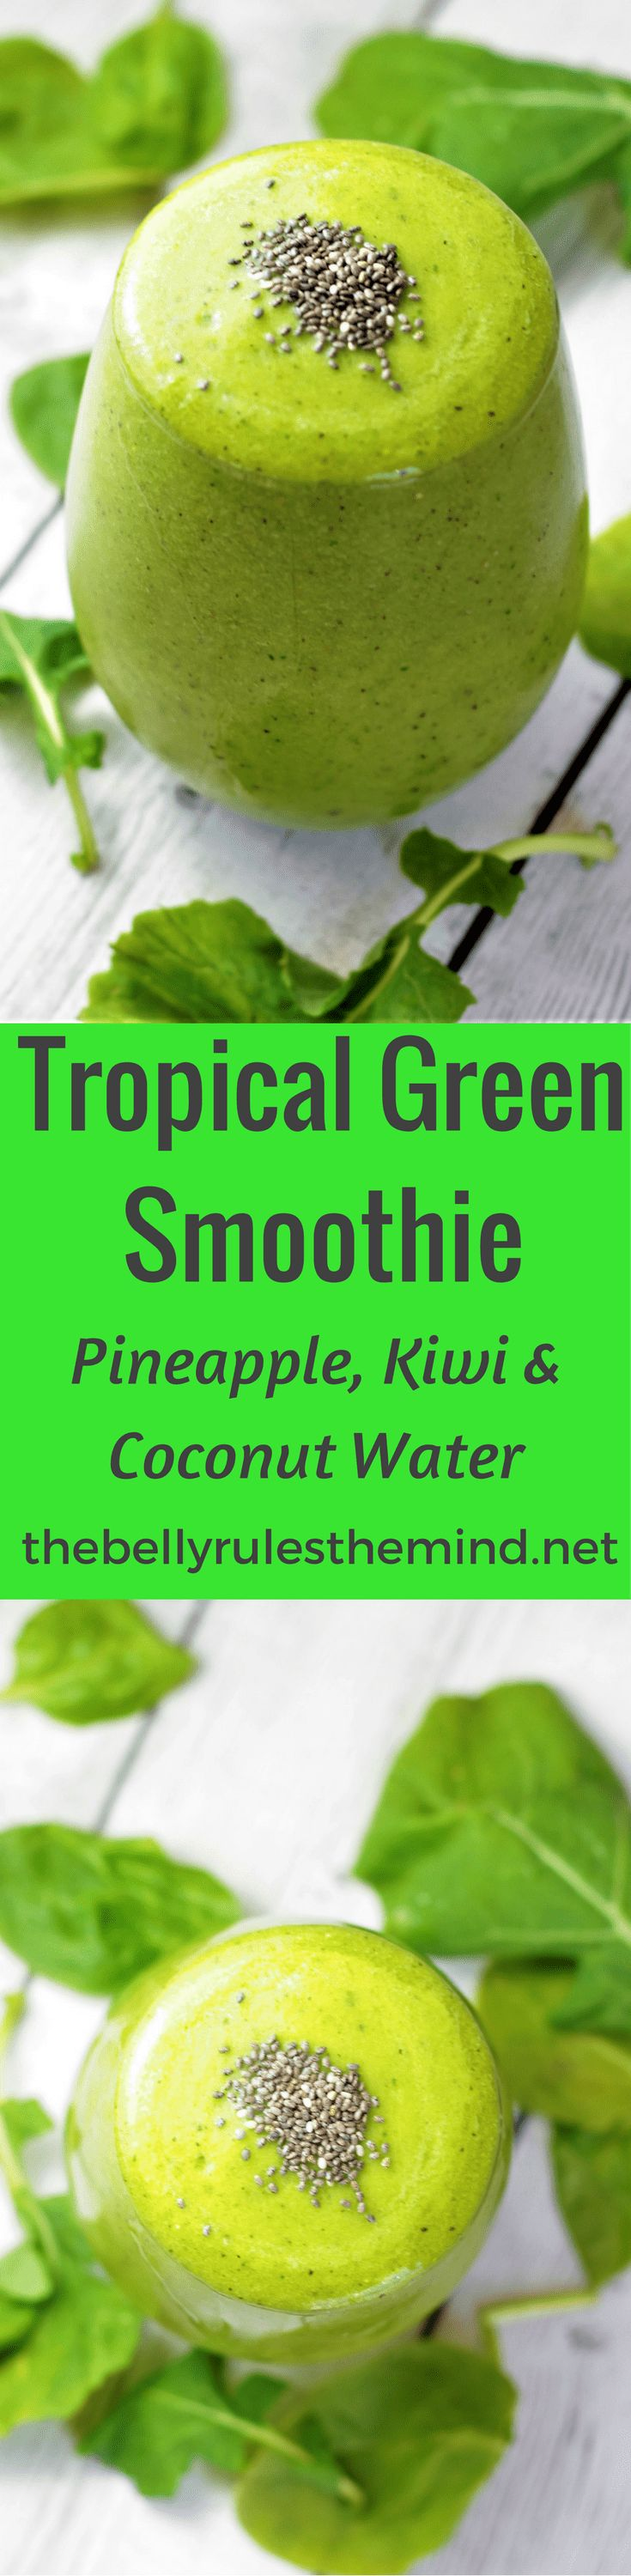 This Tropical Green Smoothie is sure to tantalize your taste buds. Nourish your body with the goodness of greens & tropical flavors like pineapple, kiwi, banana, coconut water. Vegan + Gluten Free|www.thebellyrulesthemind.net @bellyrulesdmind